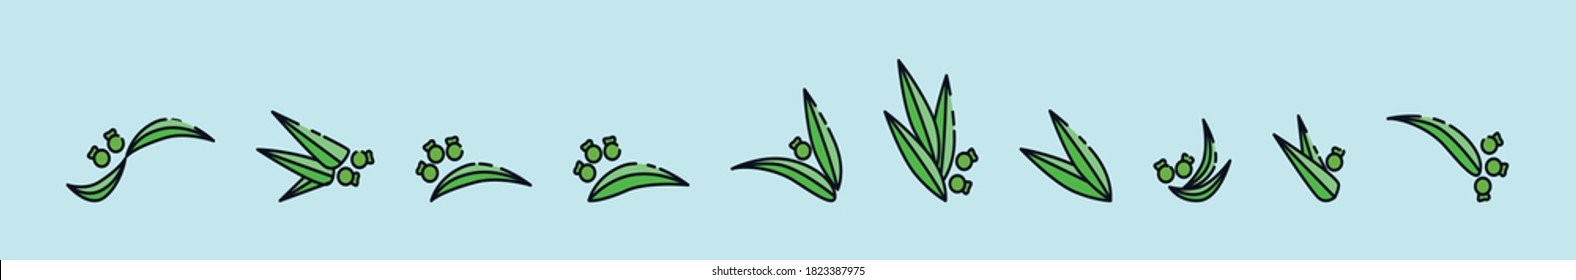 set of gumnuts and leaves natural cartoon icon design template with various models. vector illustration isolated on blue background